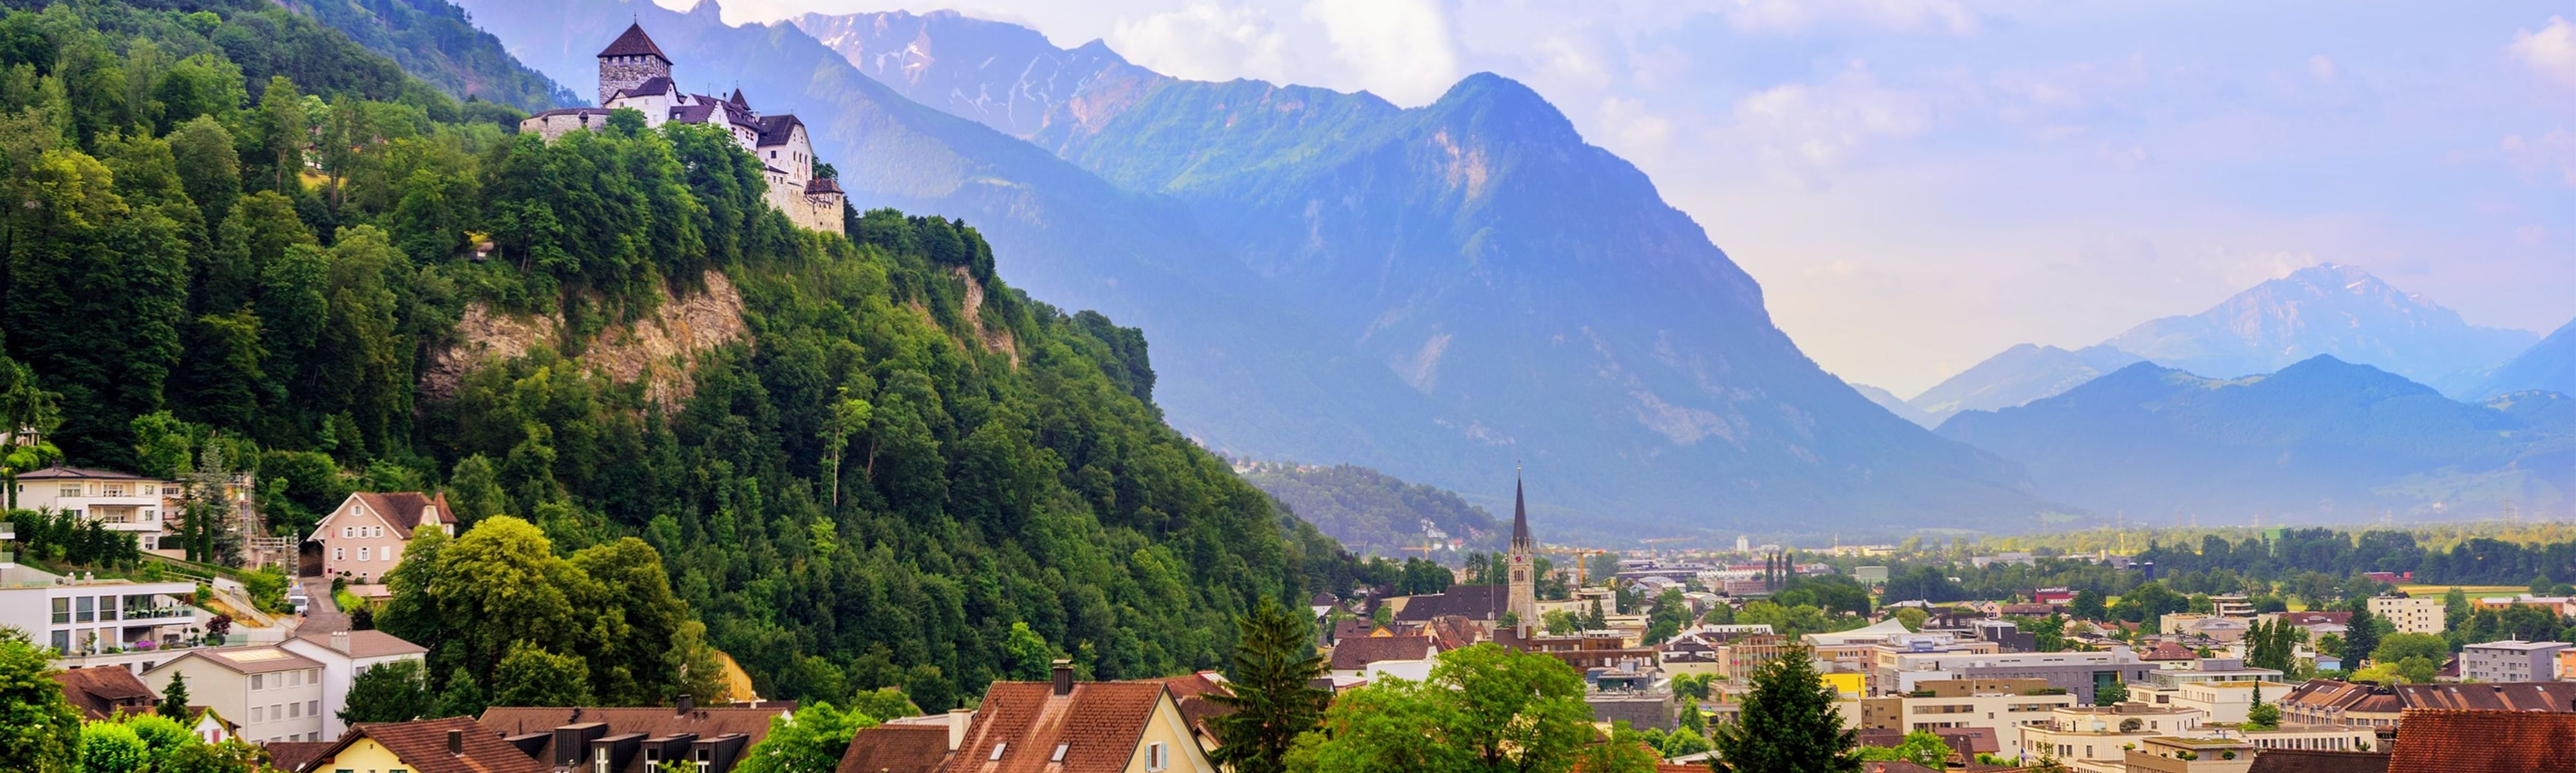 panoramic view of laduz village in liechtenstein surrounded by mountains